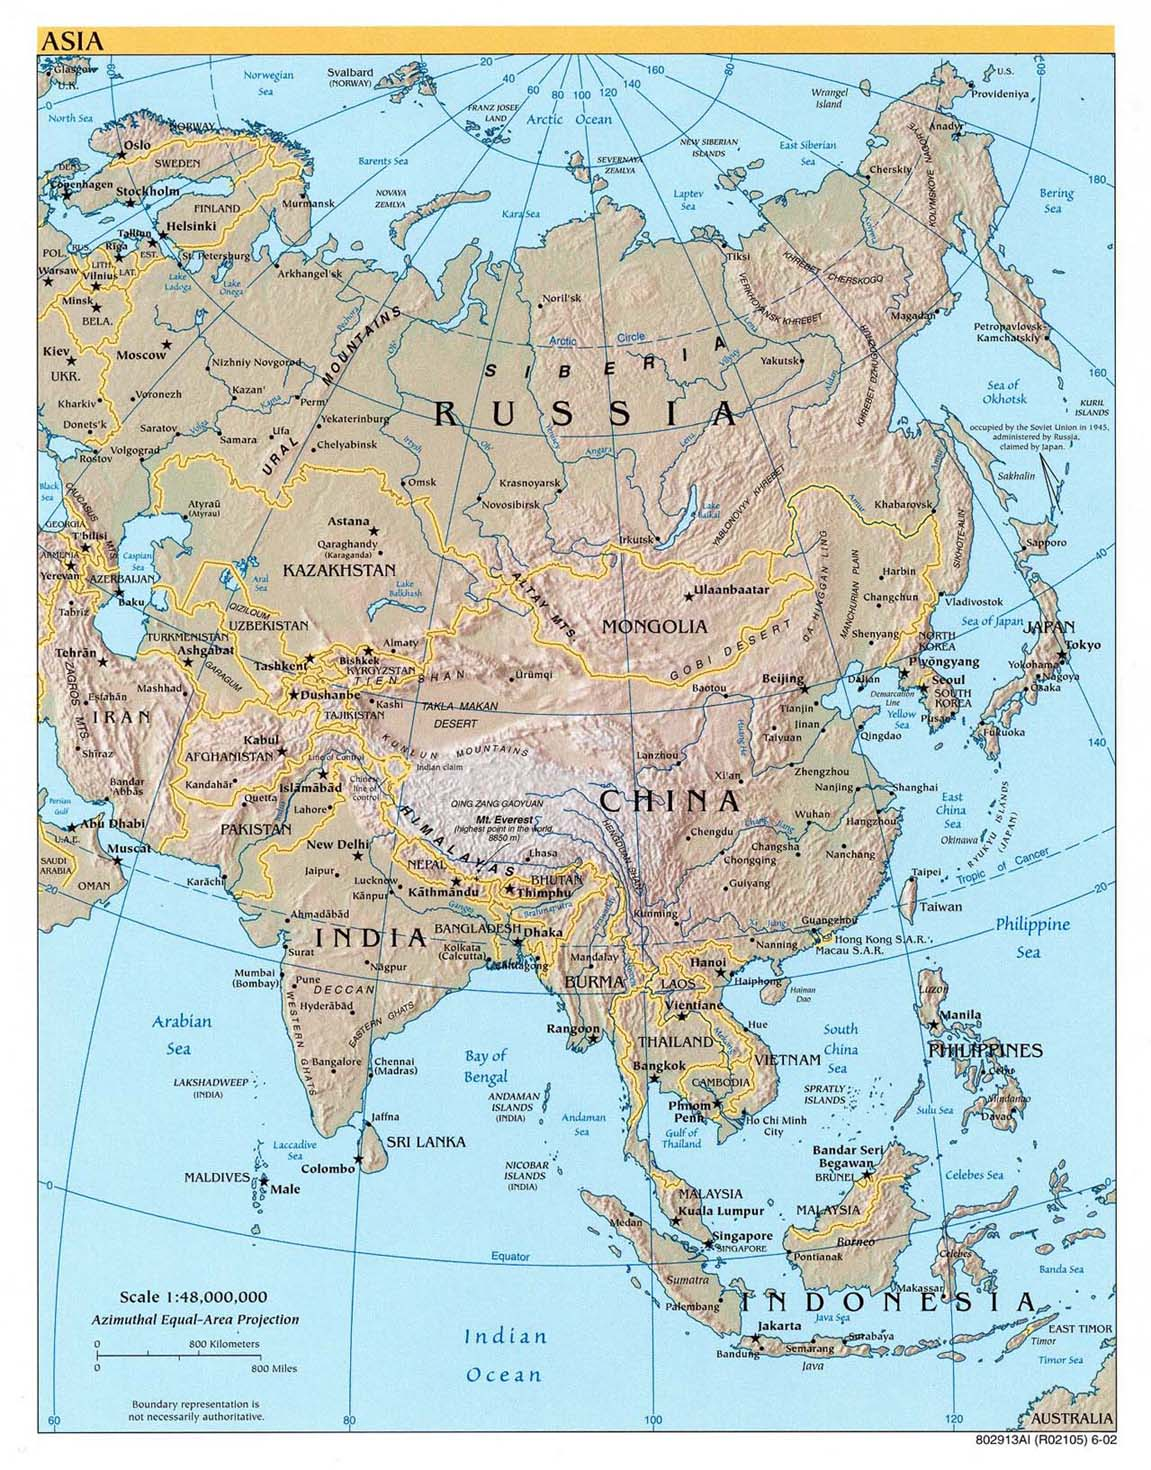 Asia Topography 2002